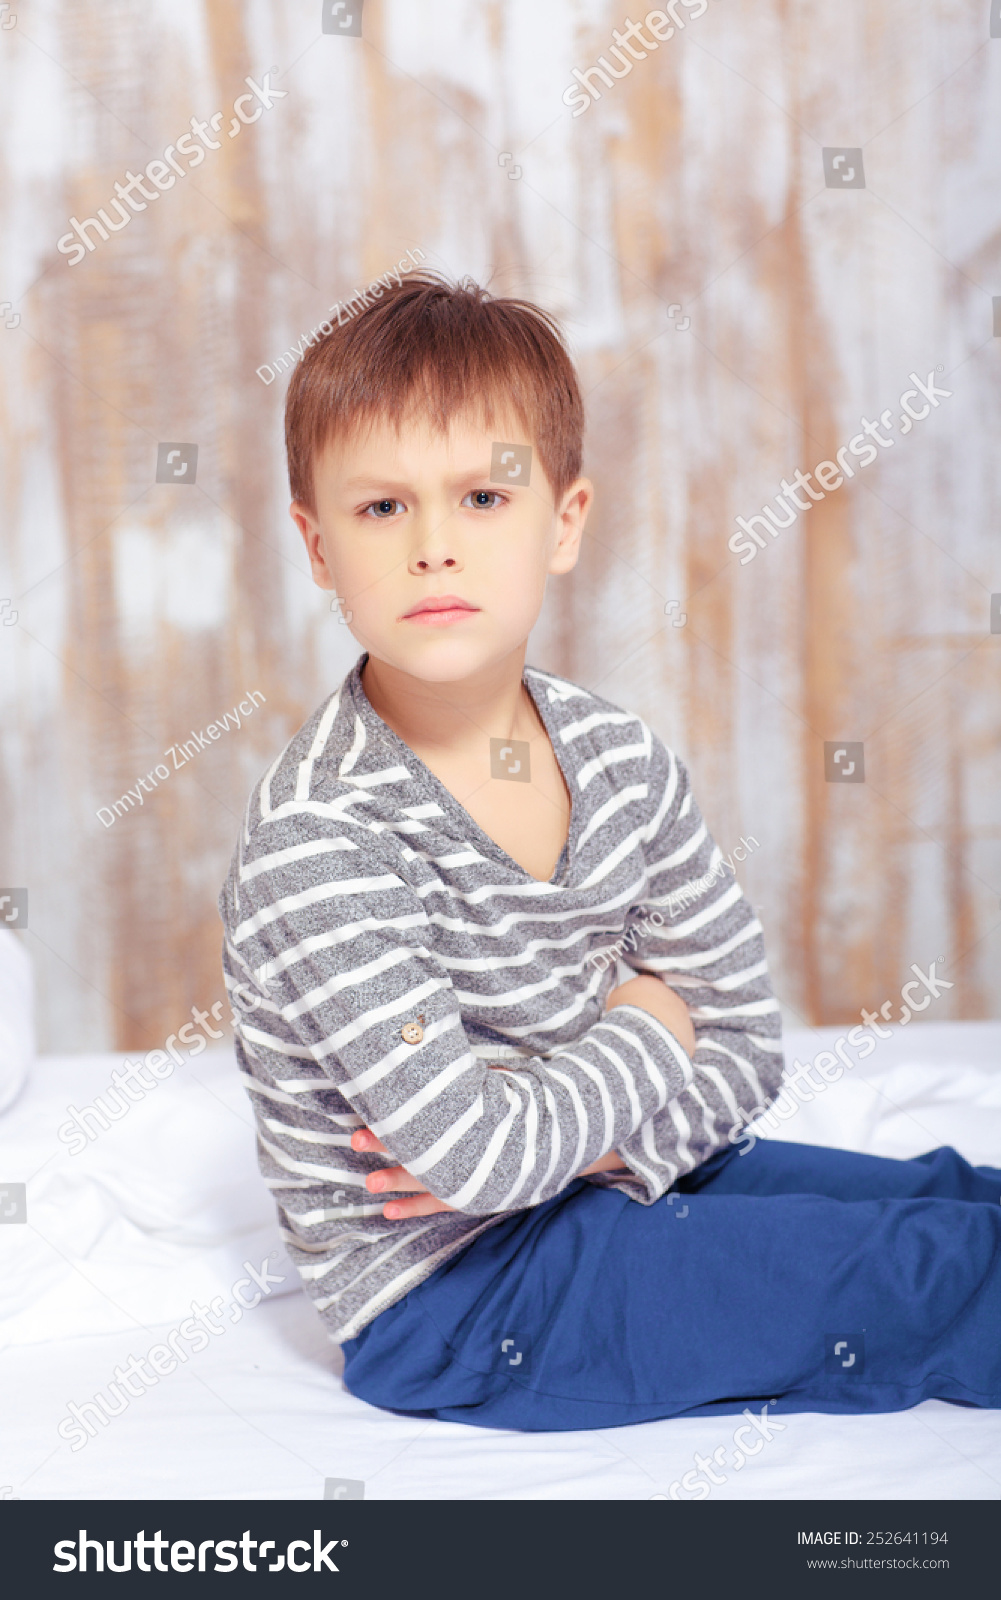 Naughty Little Boy. Sad Little Boy Keeping Arms Crossed While Sitting In Bed In Pajama ...